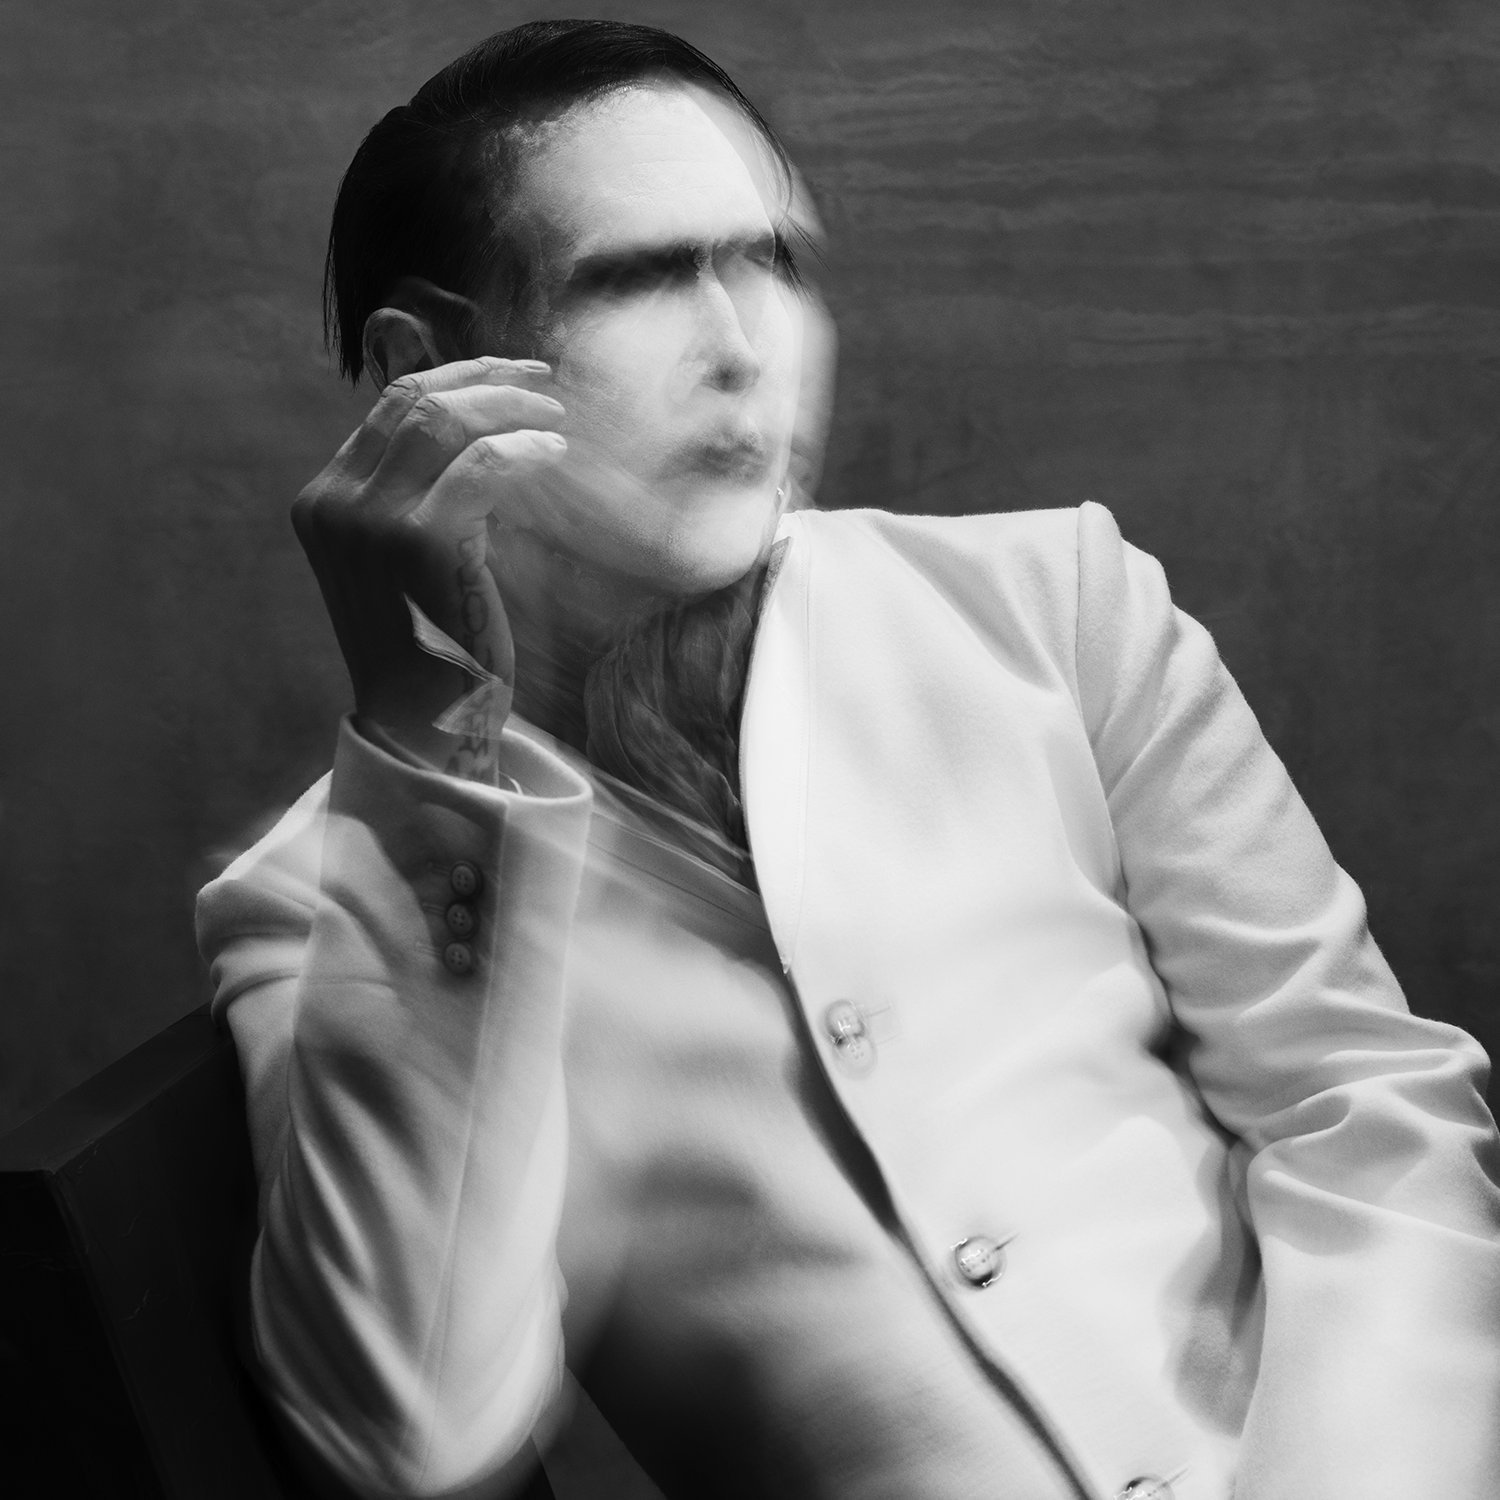 CD : Marilyn Manson - Pale Emperor [Explicit Content] (Deluxe Edition)